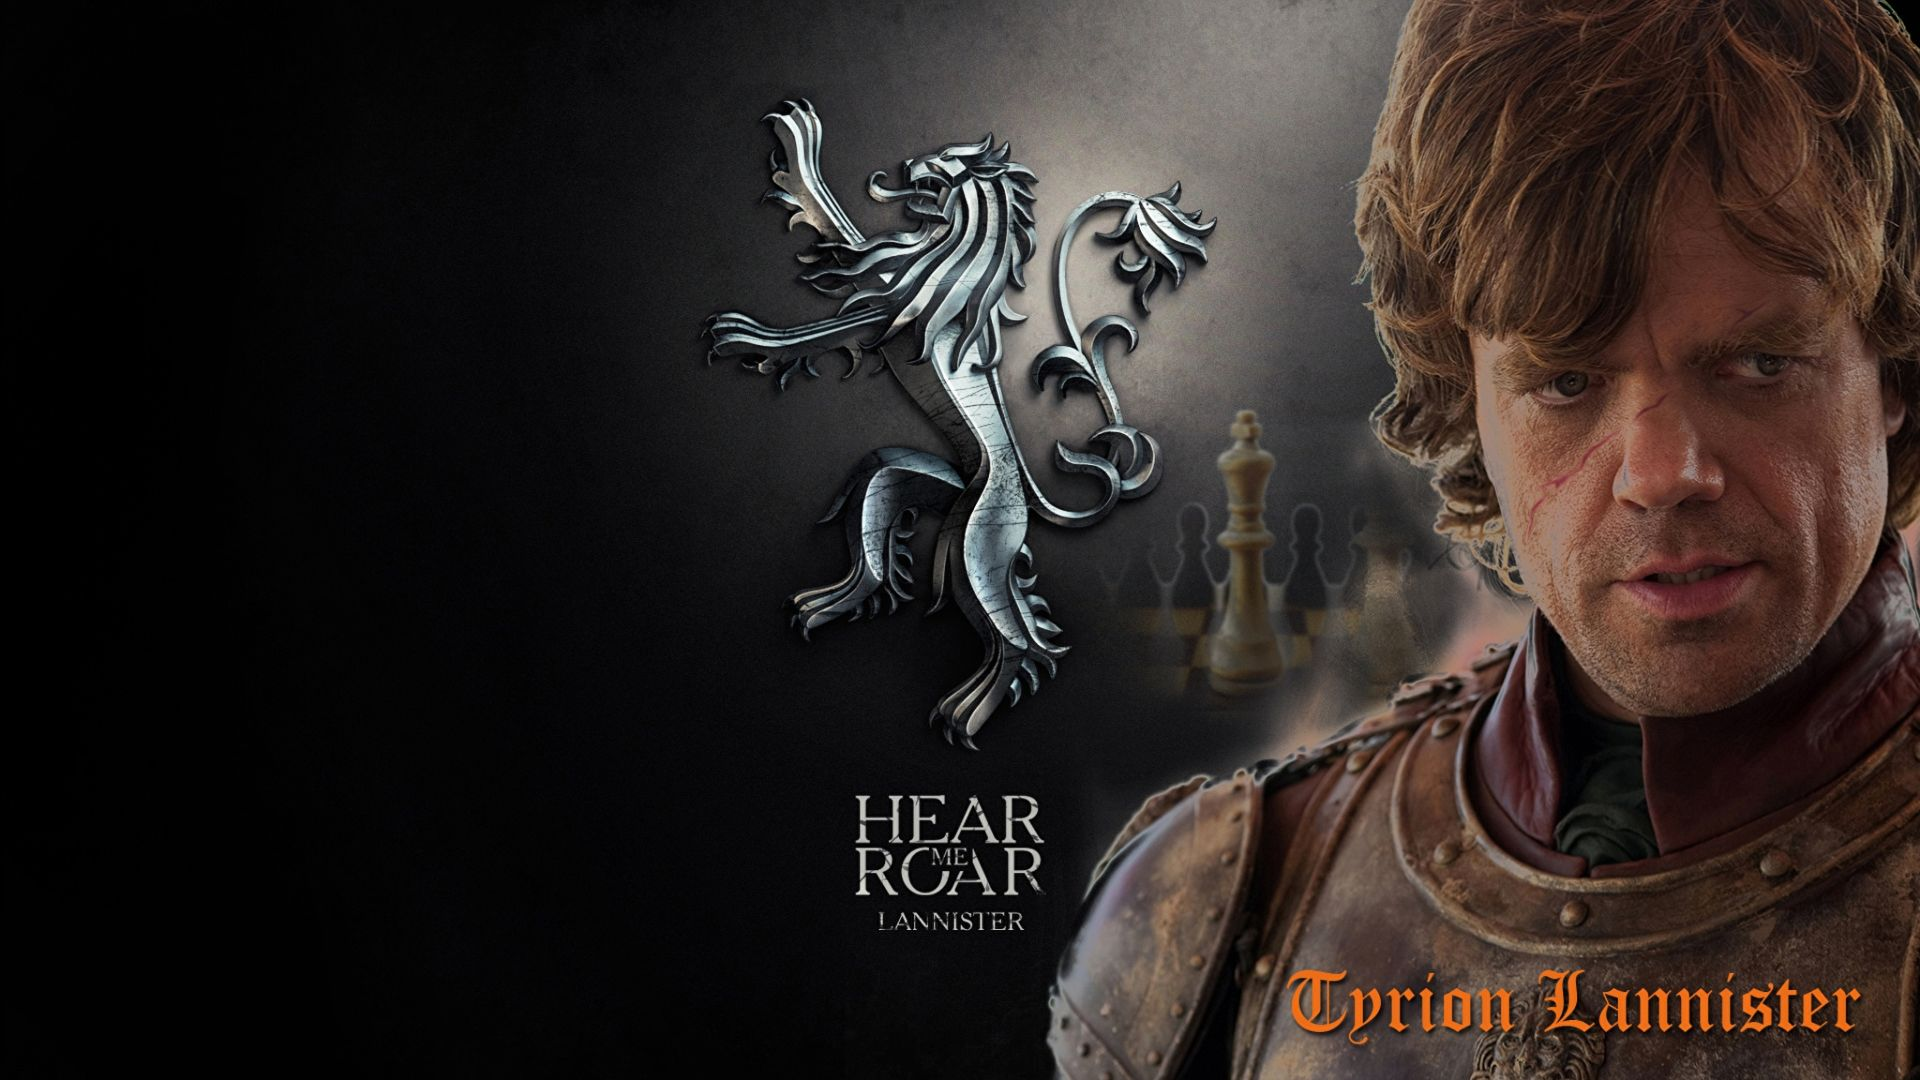 Game of Thrones Sigil Lannister House